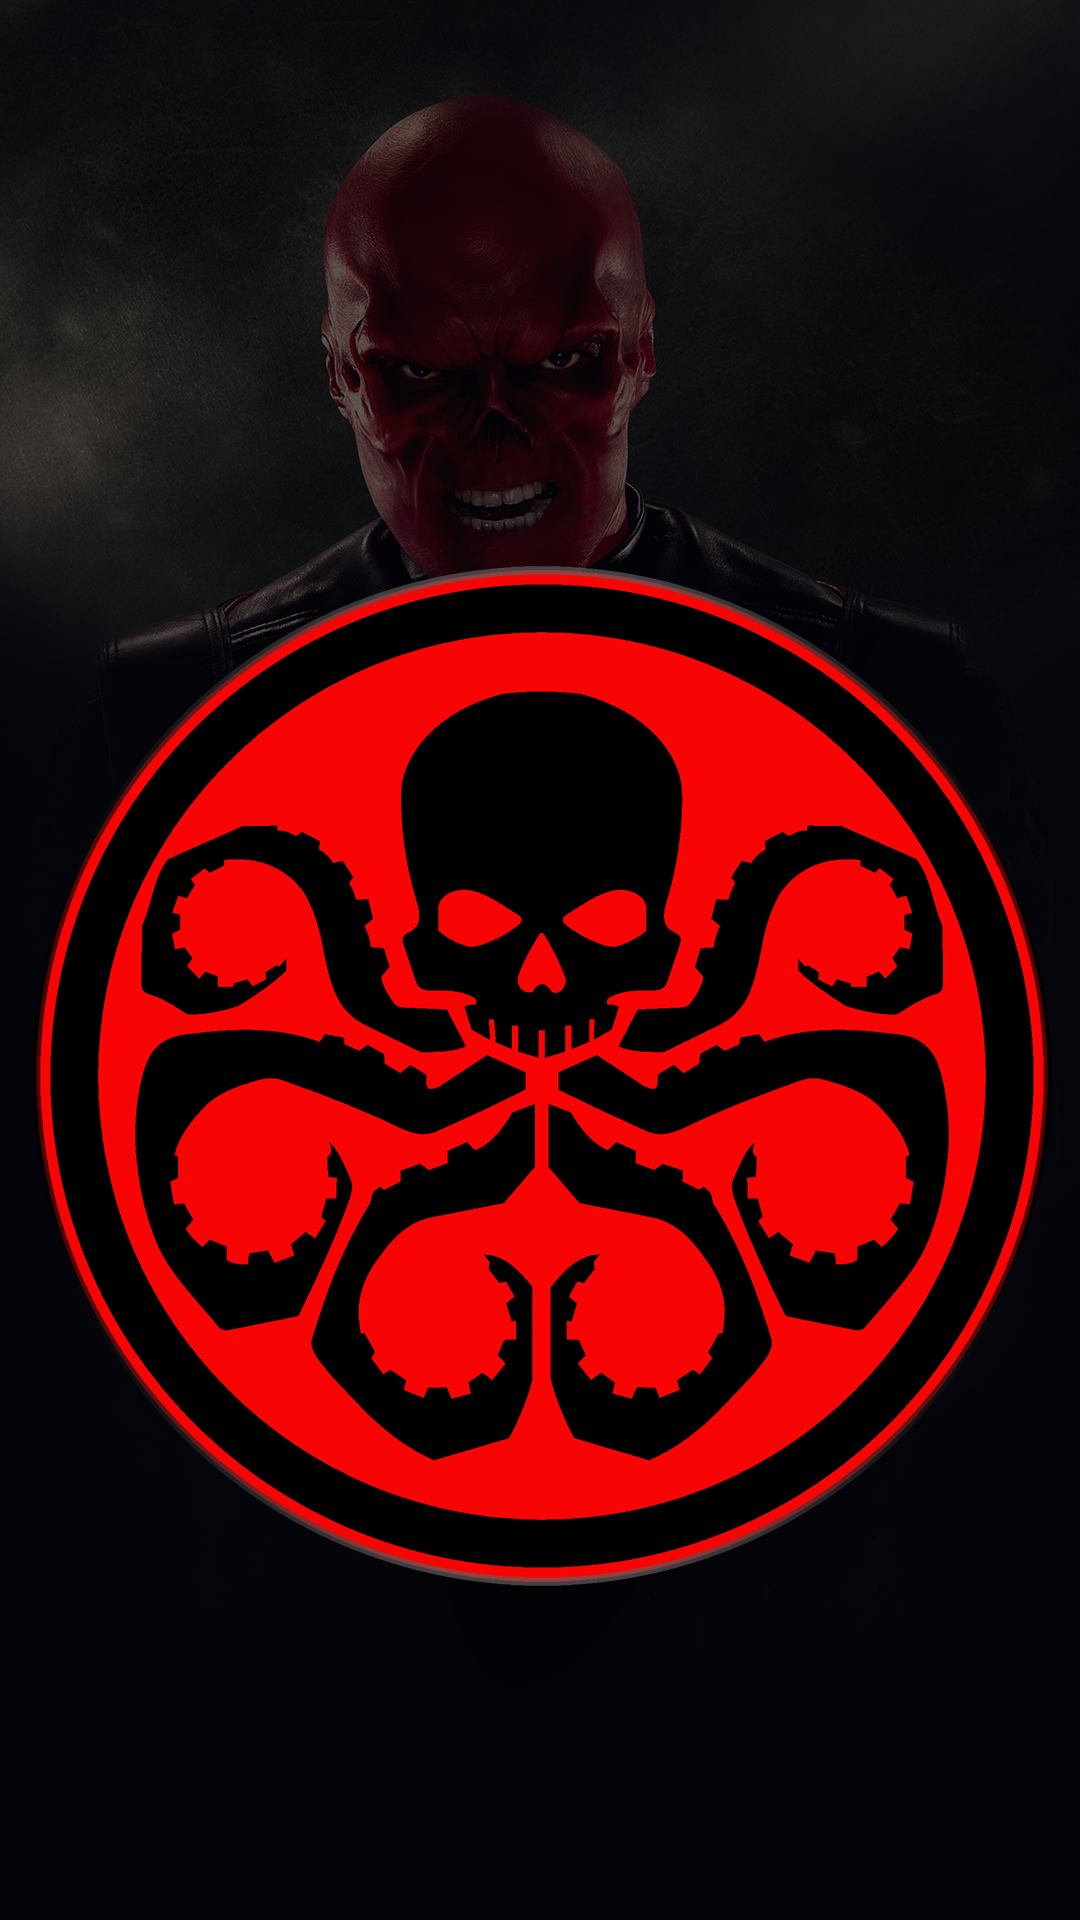 Hydra Skull 1080 X 1920 FHD Wallpaper